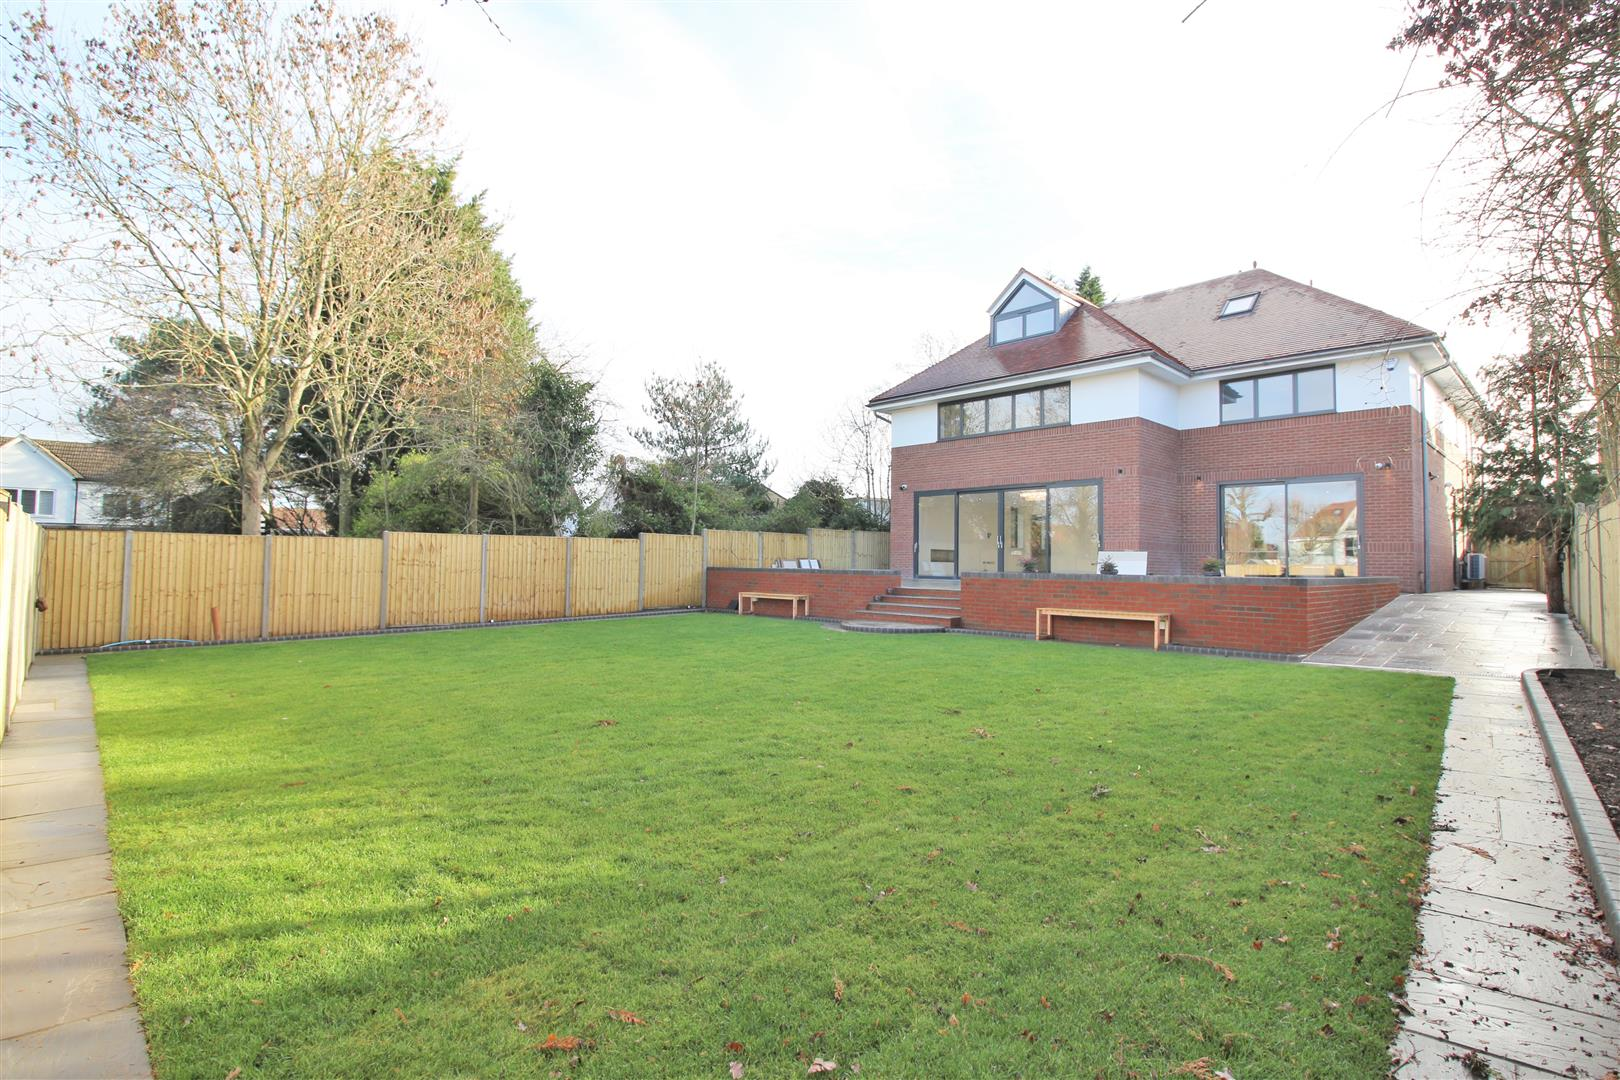 7 bed to rent - (Property Image 27)